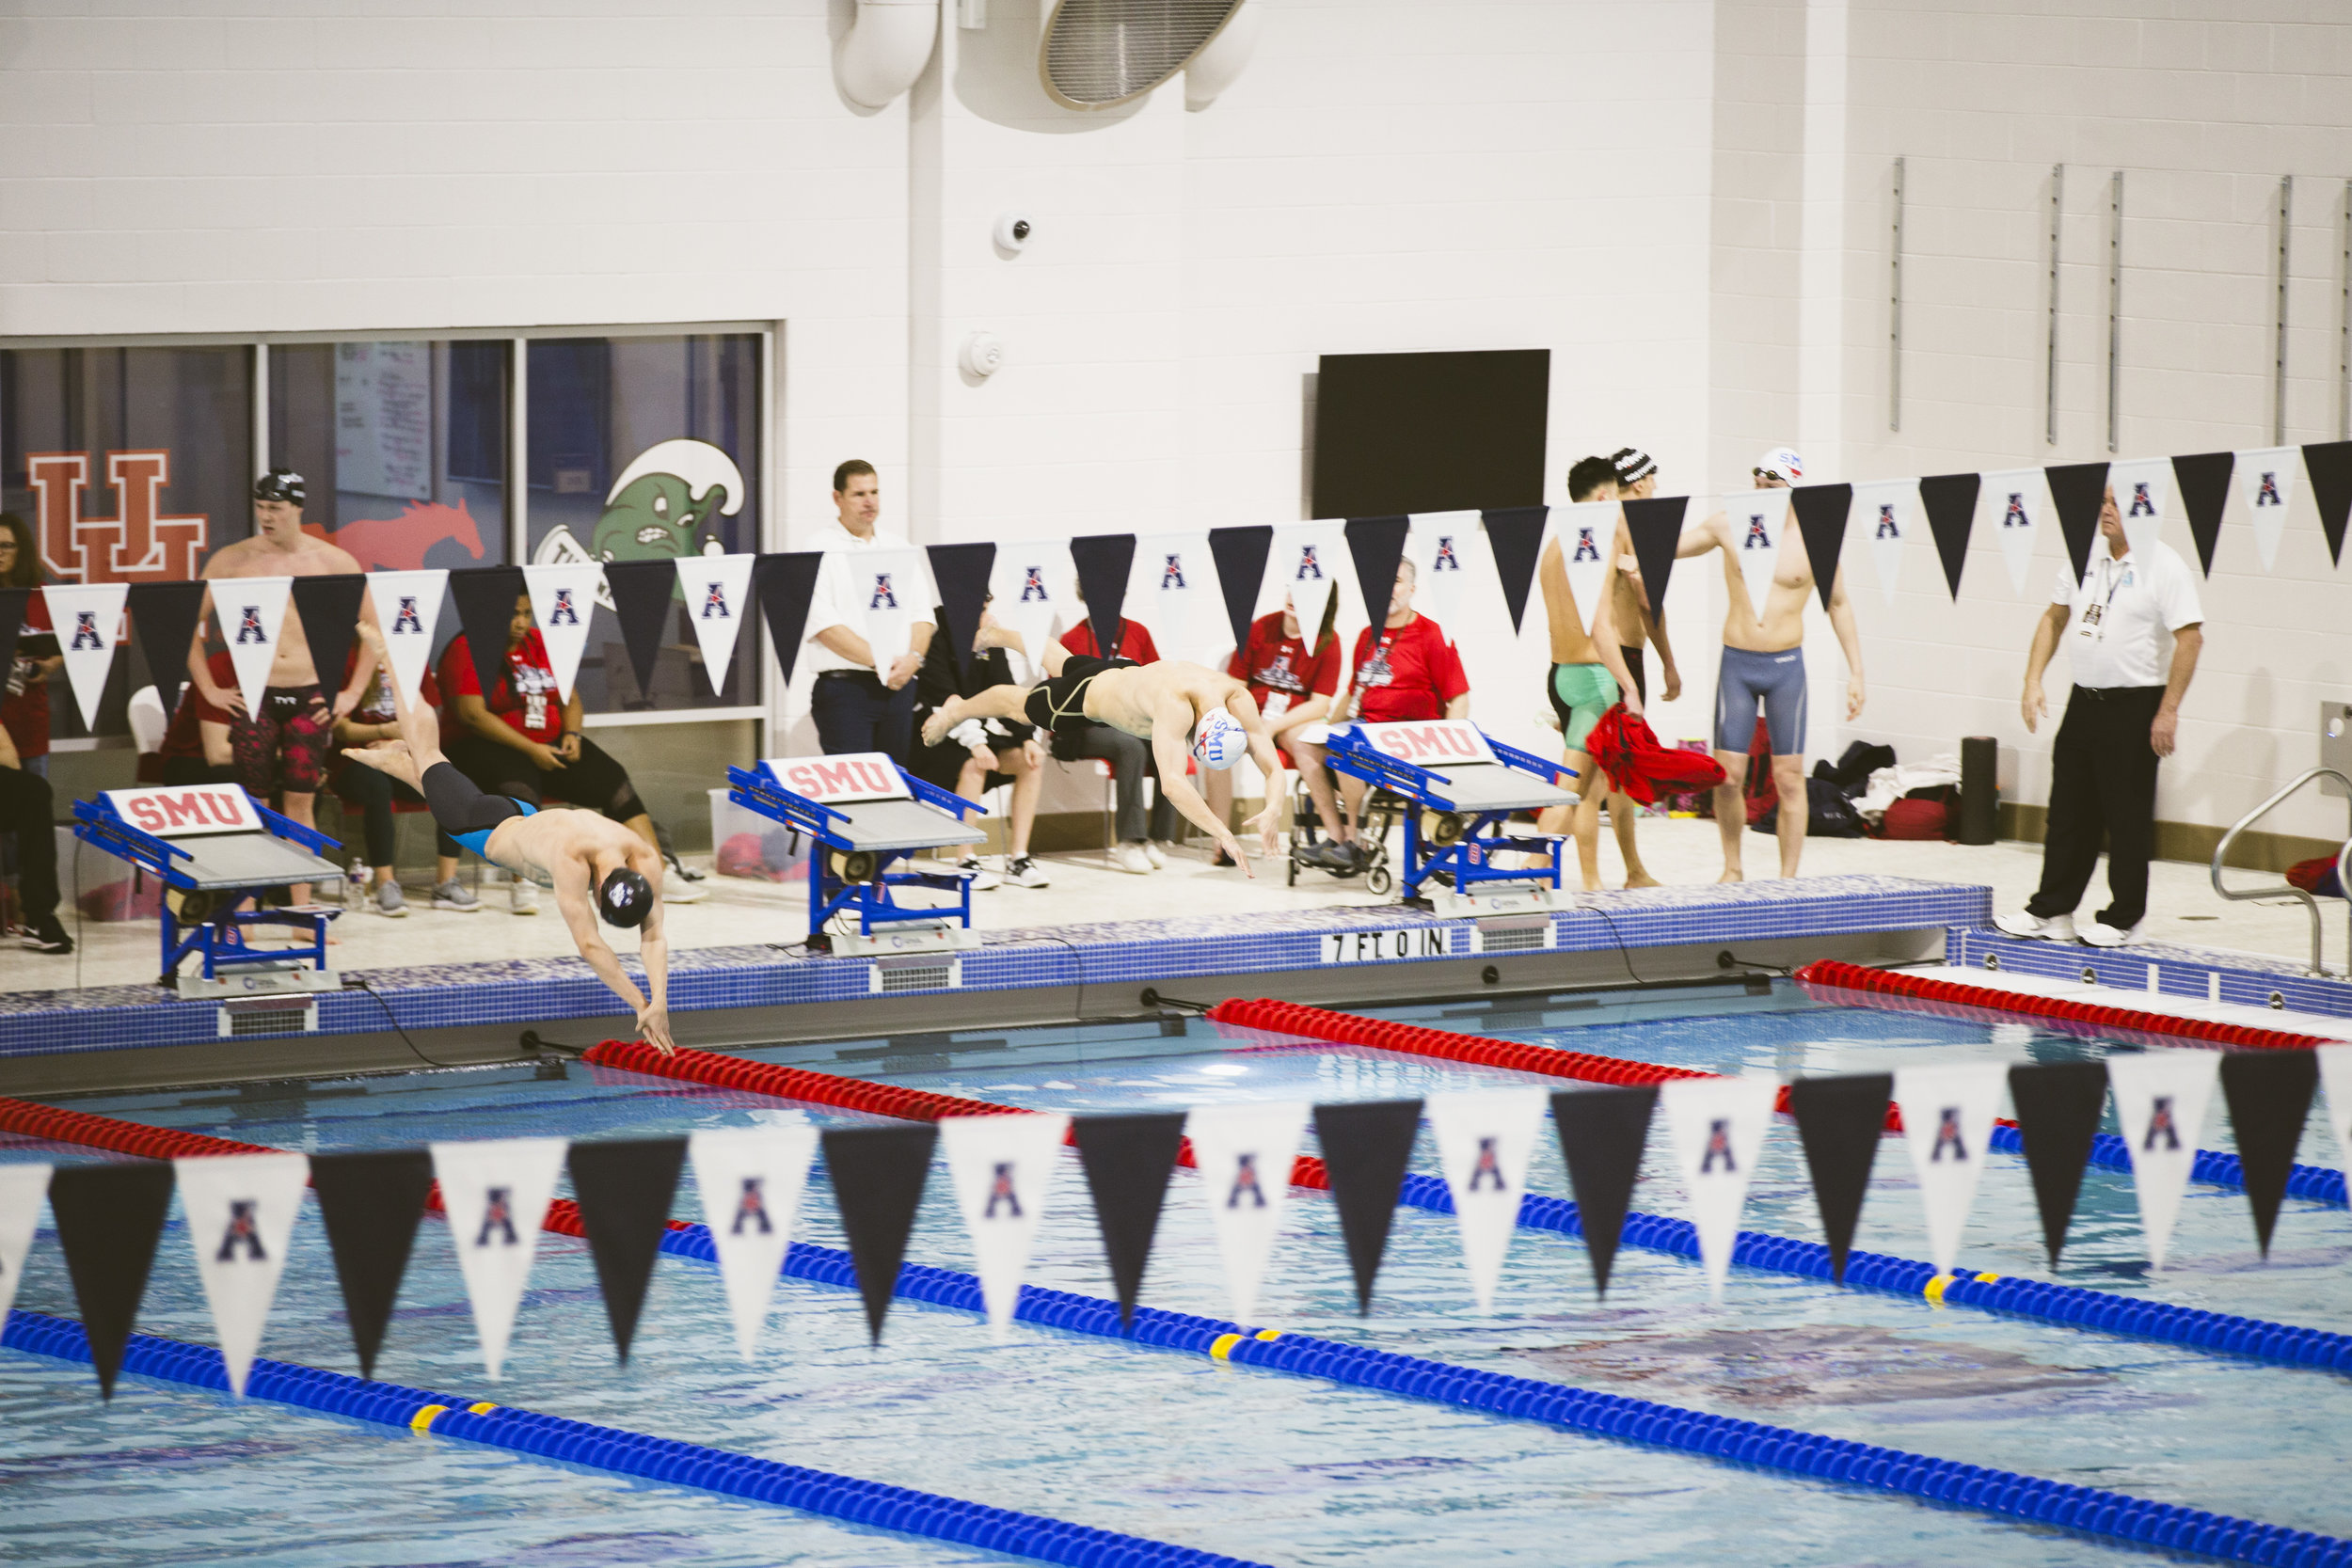 Swimmers at Antioch - We have a few SMU students at Antioch who competed at Conference this weekend. Way to go guys! Justin, Ralph, Tristan, and Reid: way to GO!